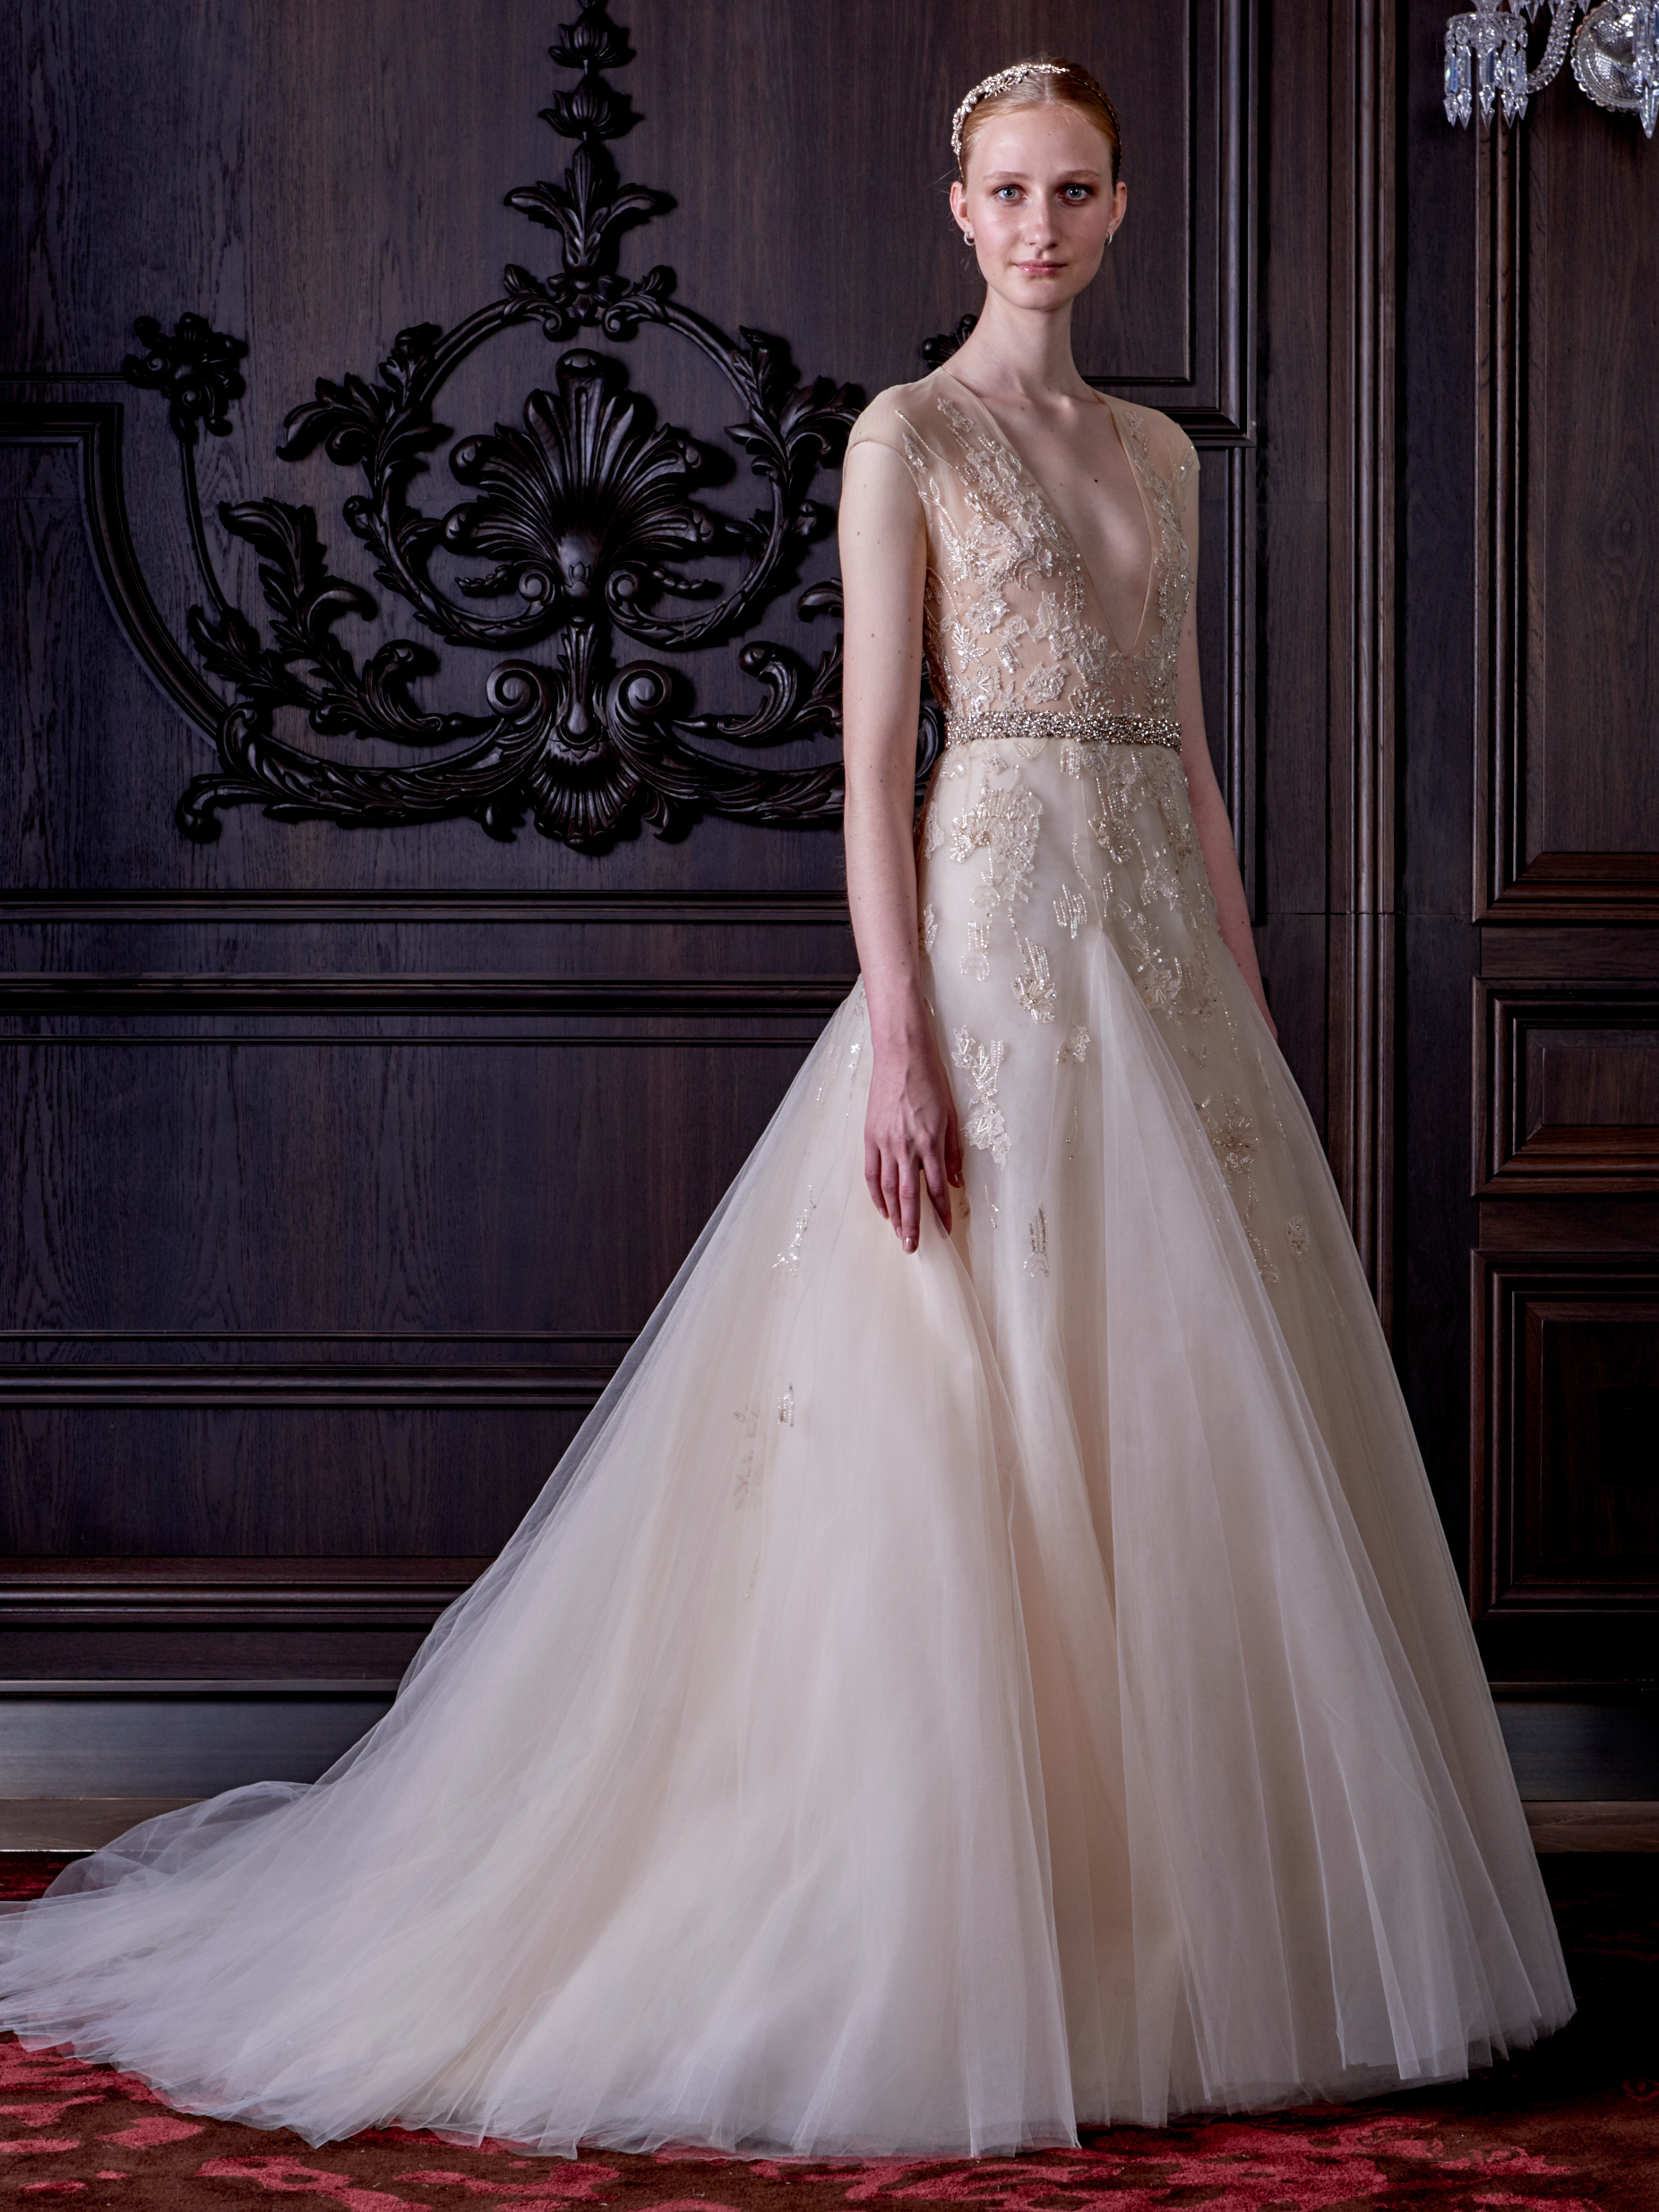 Monique Lhuillier's New Wedding Dress Collection Is Both Naughty ...